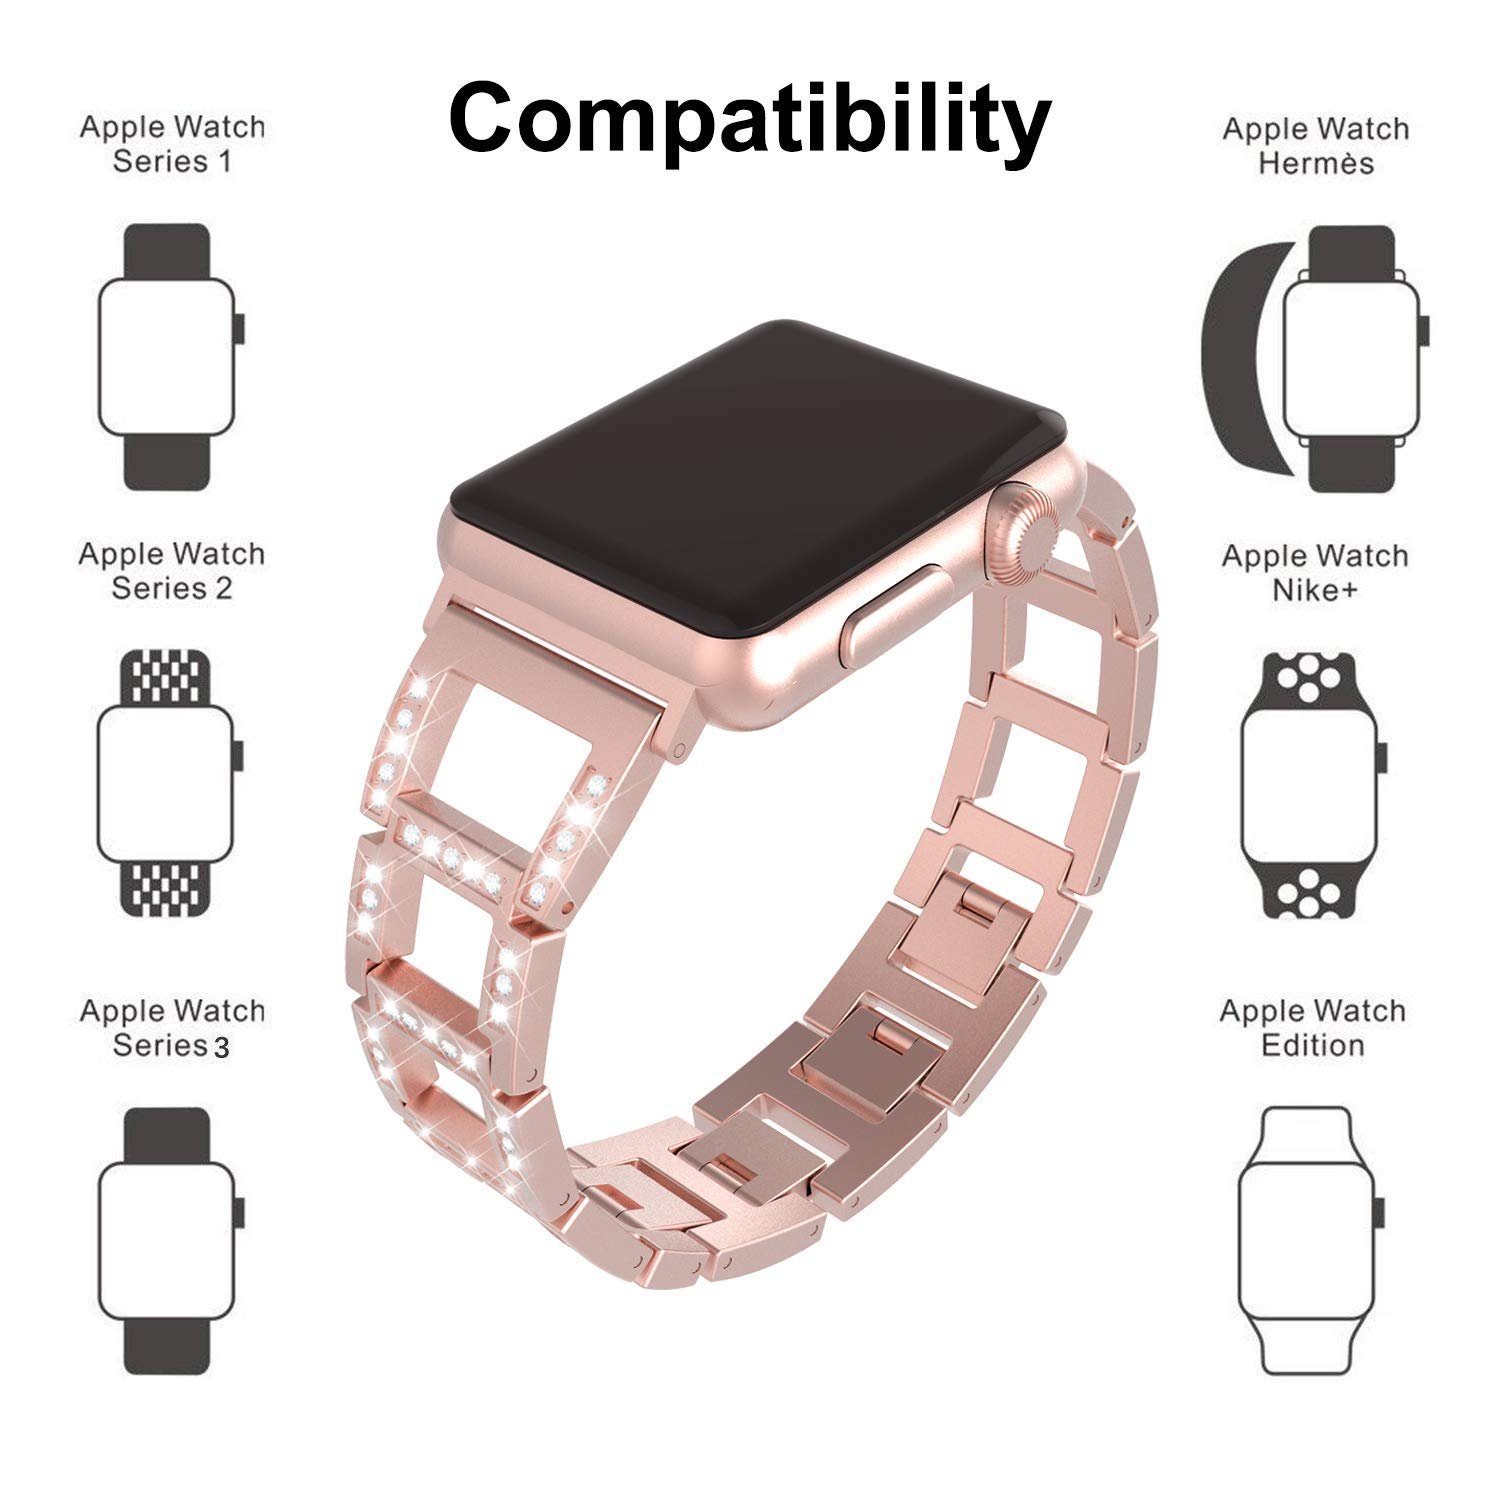 ITSHINY Apple Watch Strap 38mm 42mm, Adjustable Fashion Iwatch Bands Women, Replacement Metal Sport Strap Accessories Iwatch Series 3 2 1, Nike+, Edition (38mm, Rose Pink)